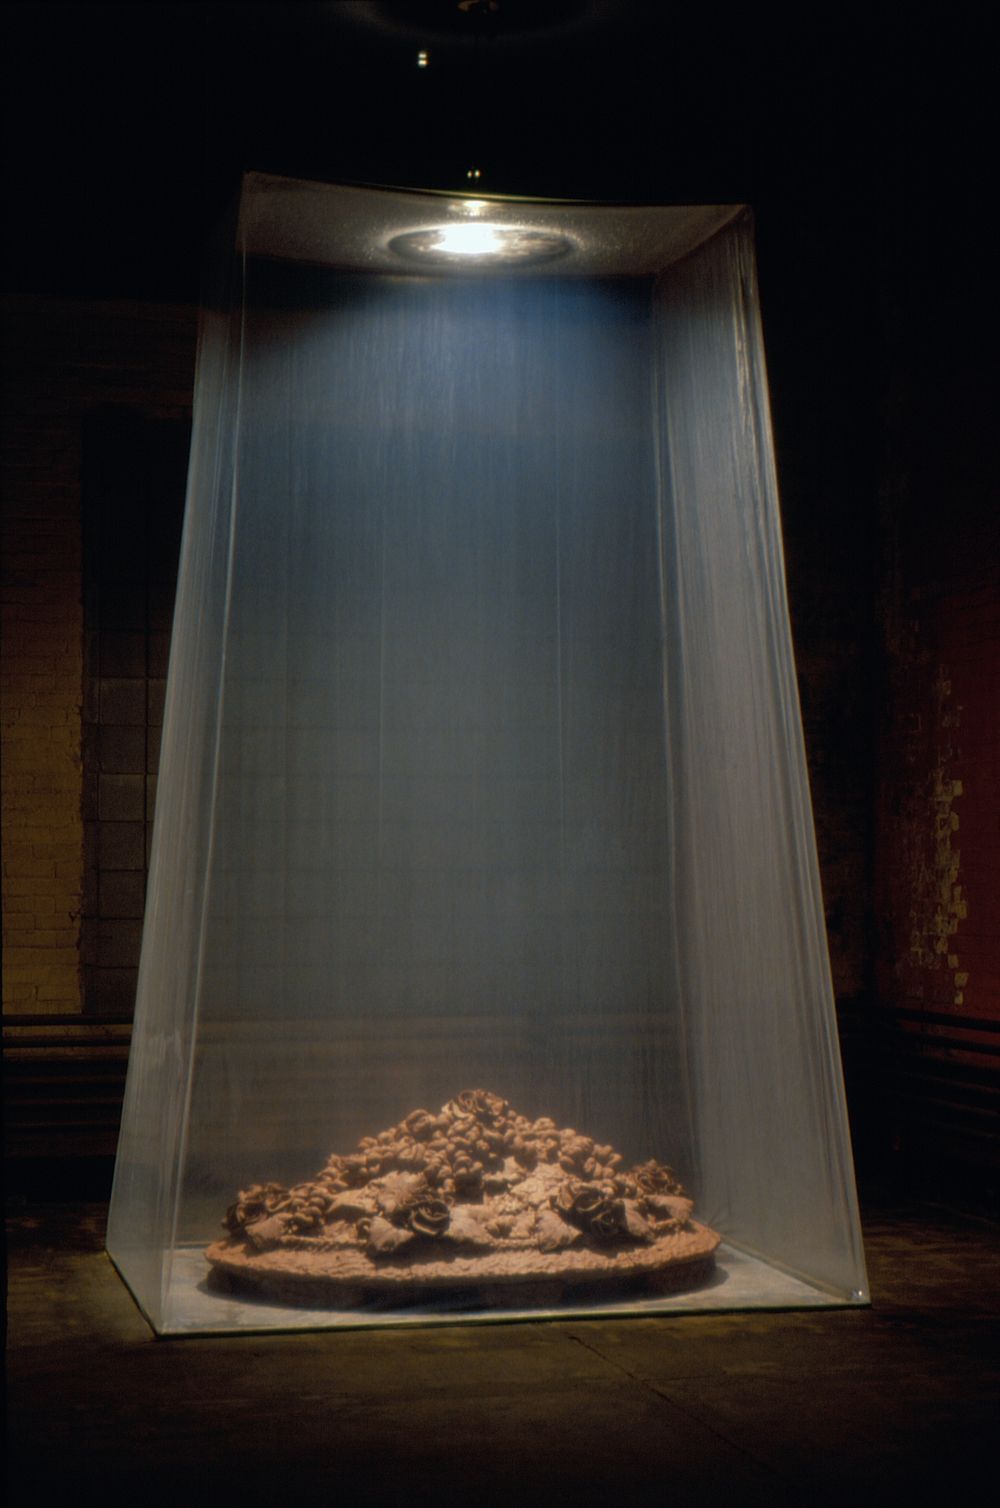 Fecundity in Absence, 1995